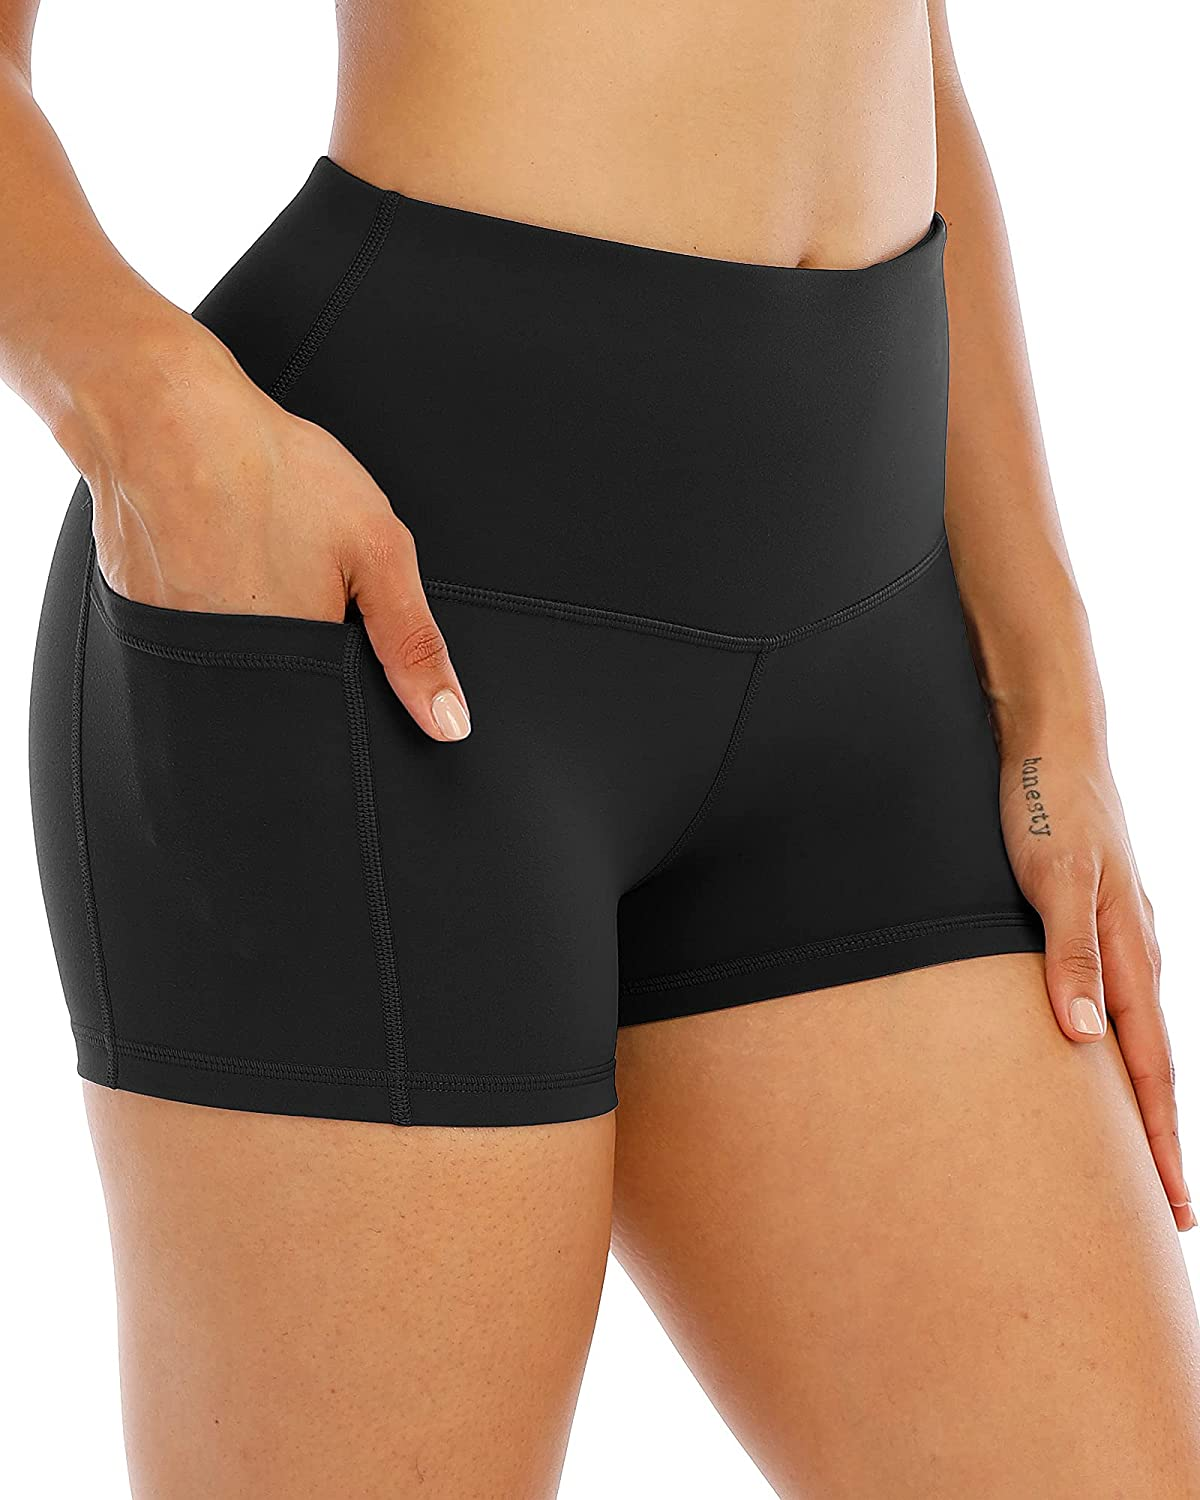 CHRLEISURE Bombing new work Chicago Mall Spandex Yoga Shorts with High Pockets Women for Wais